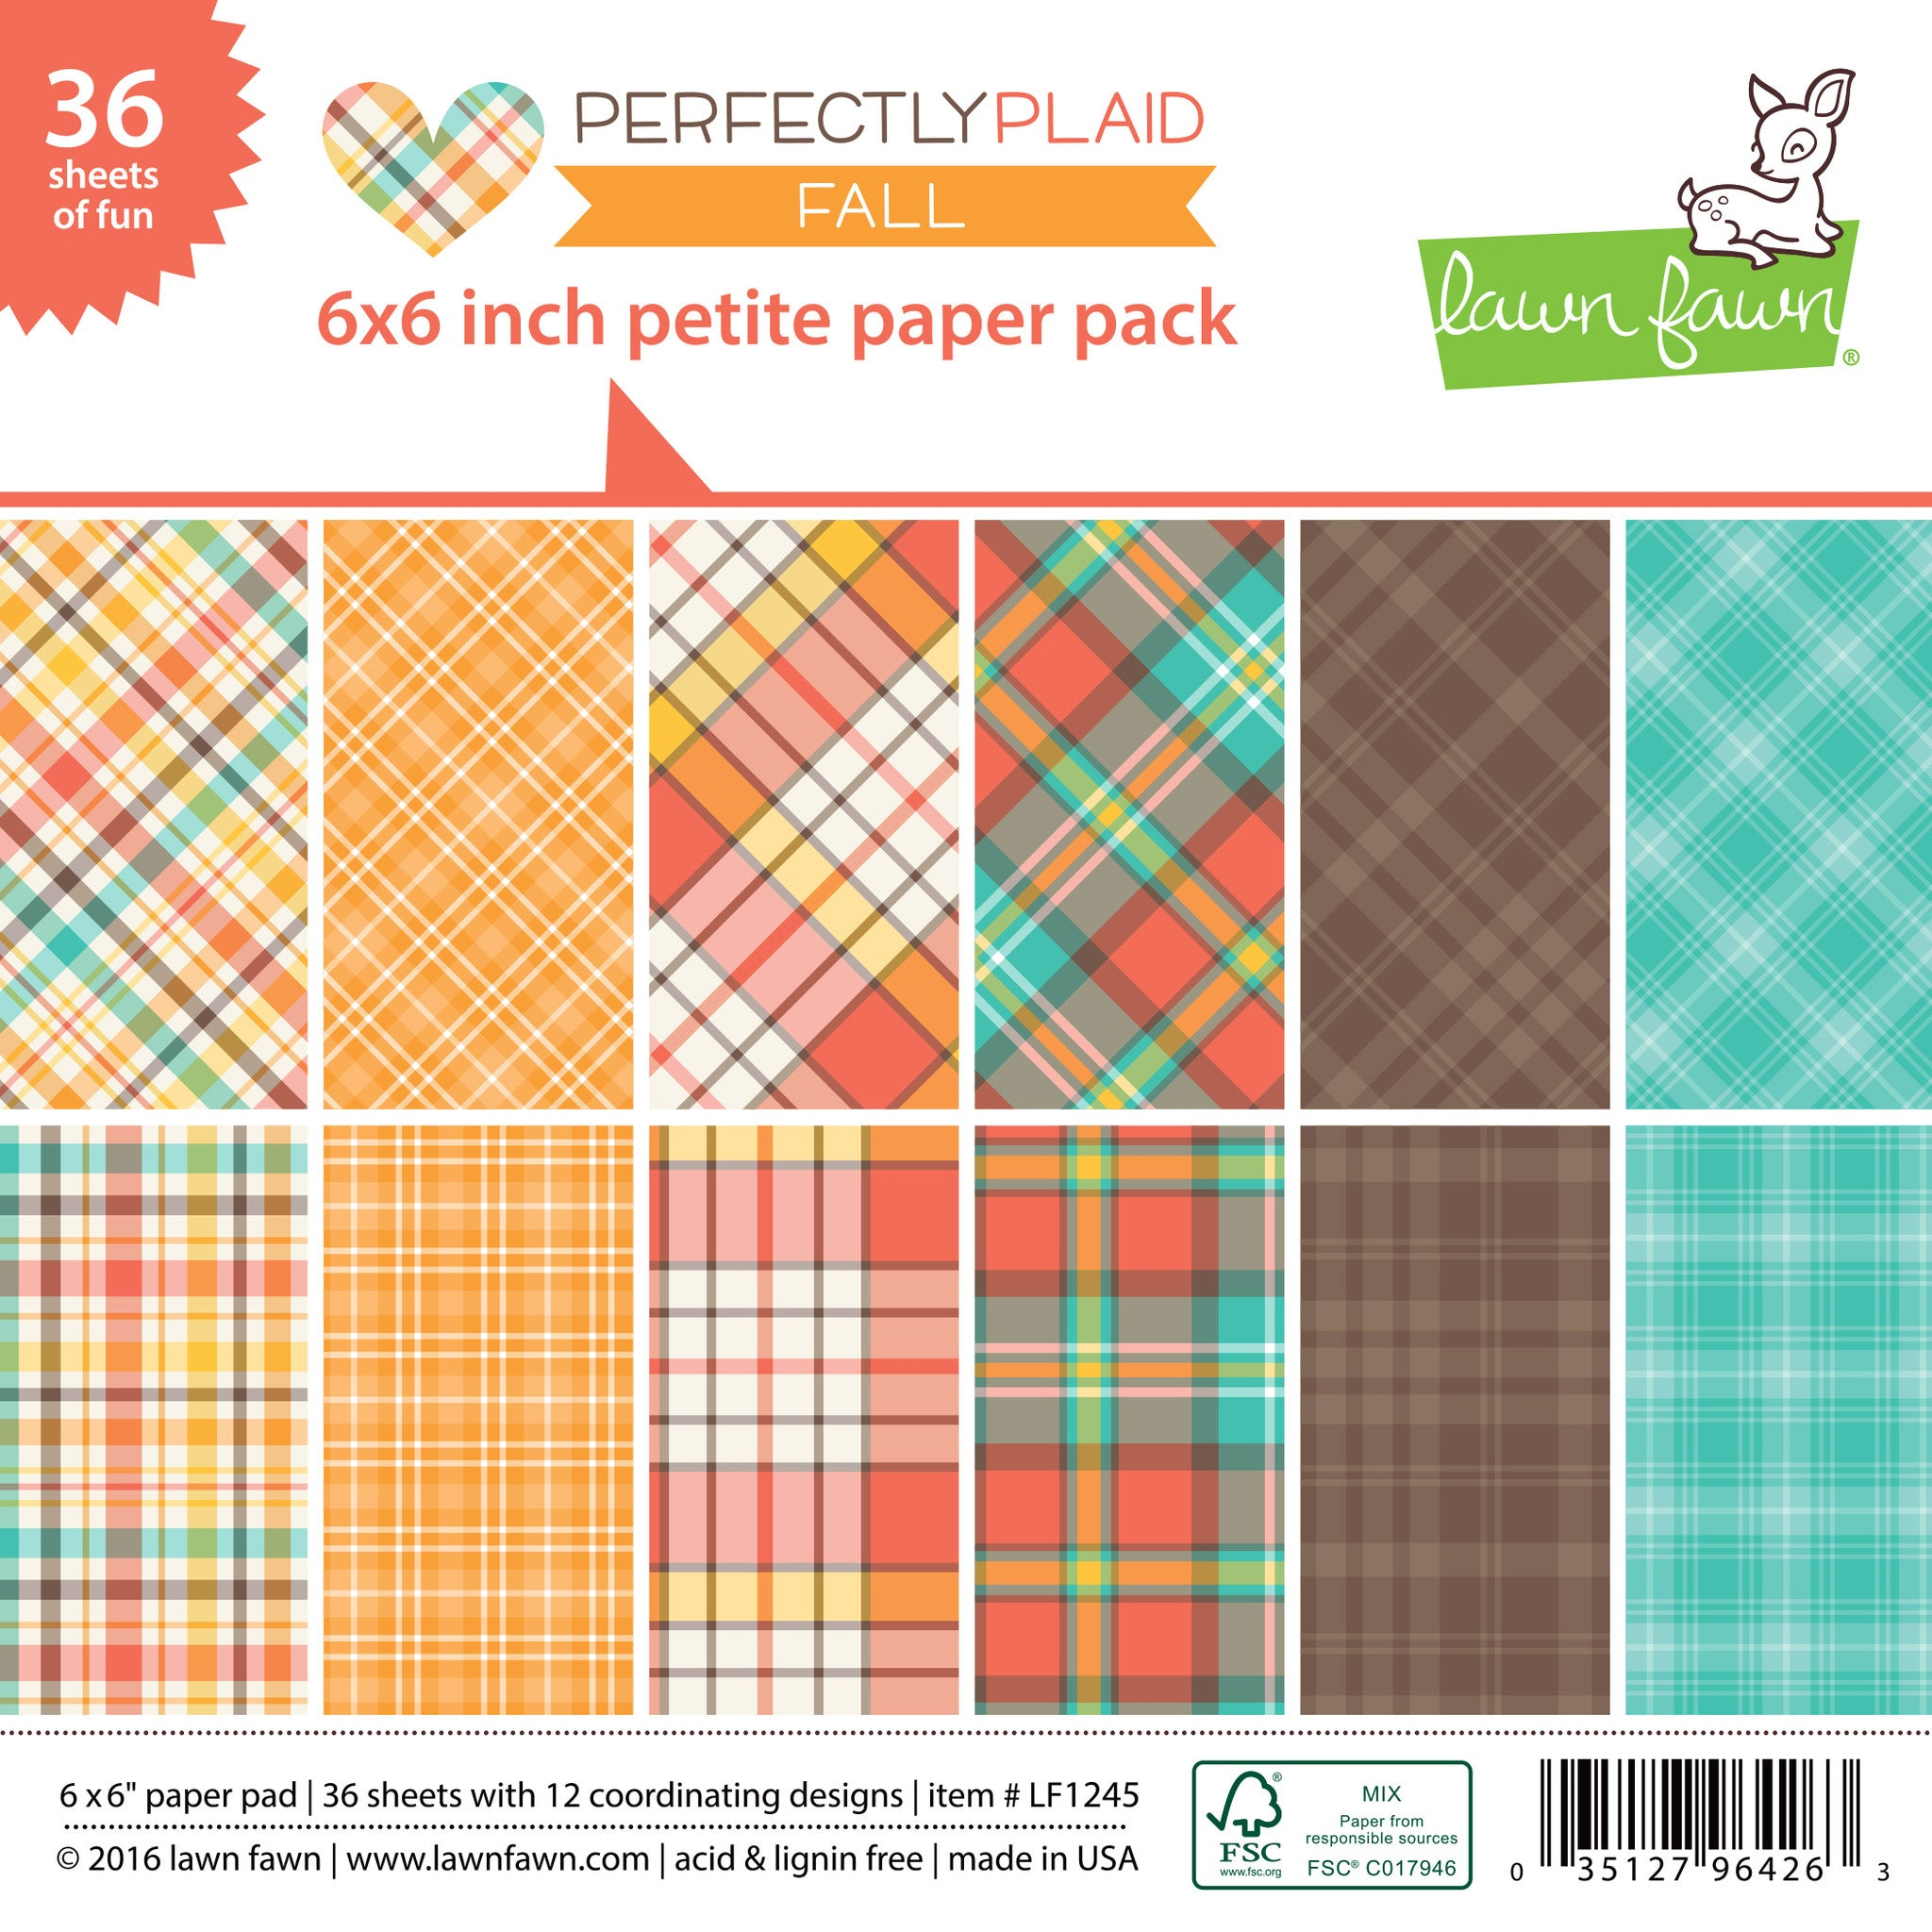 perfectly plaid fall petite paper pack